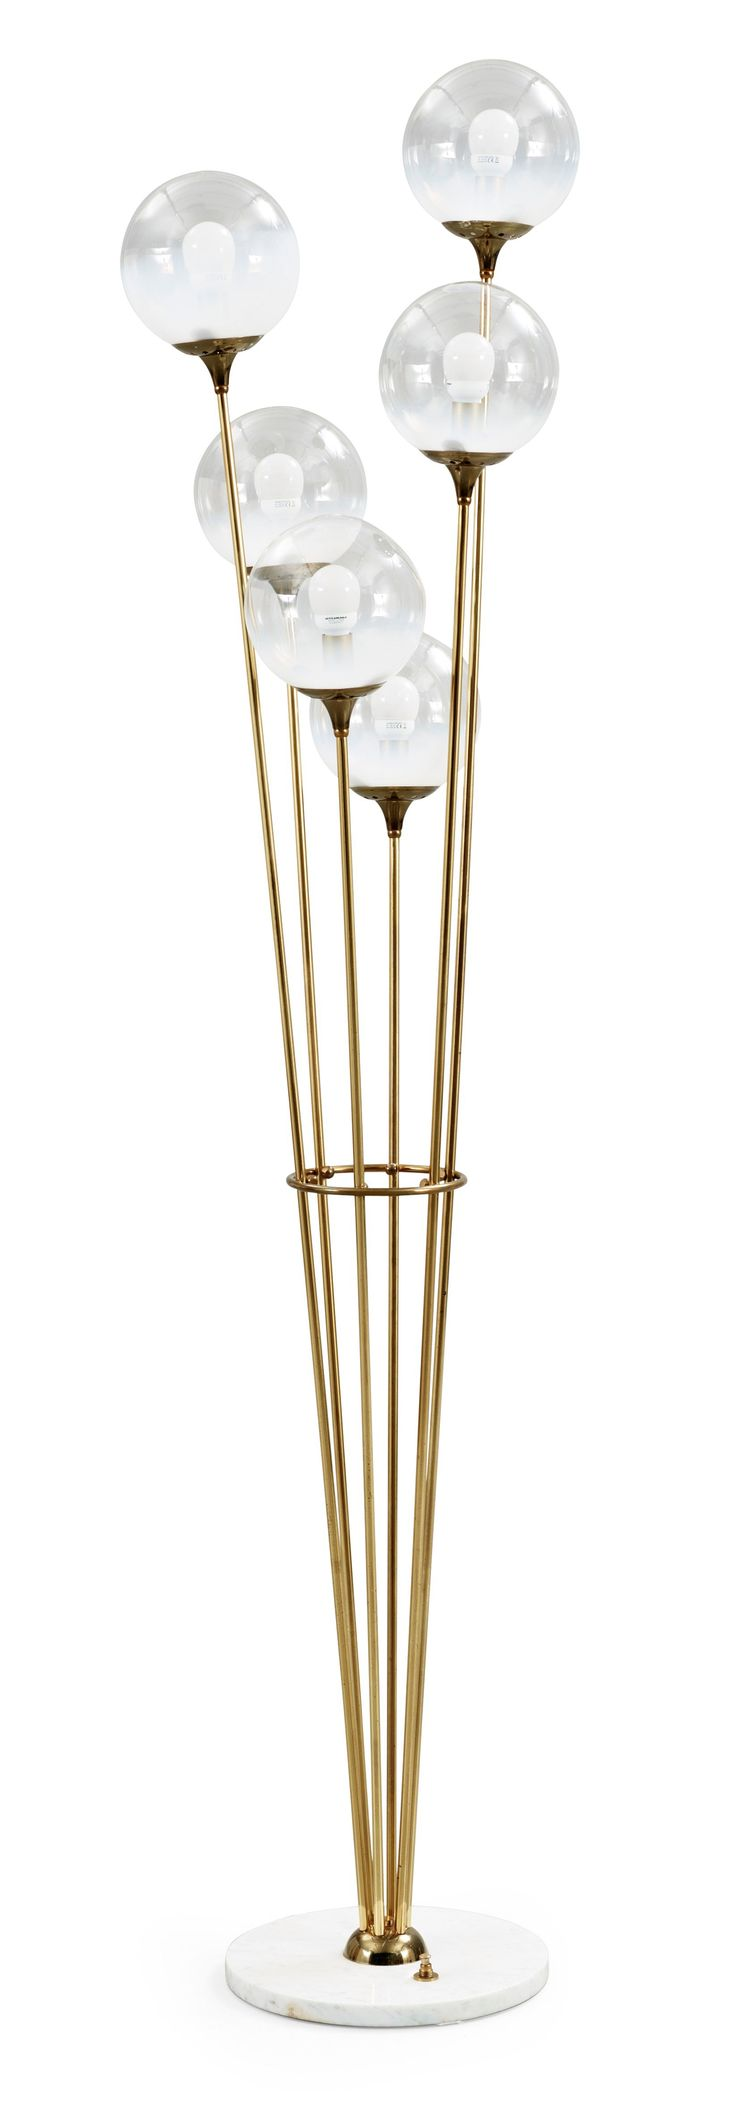 A brass and marble floor lamp, attributed to Stilnovo, Italy 1950's. Height 174 cm